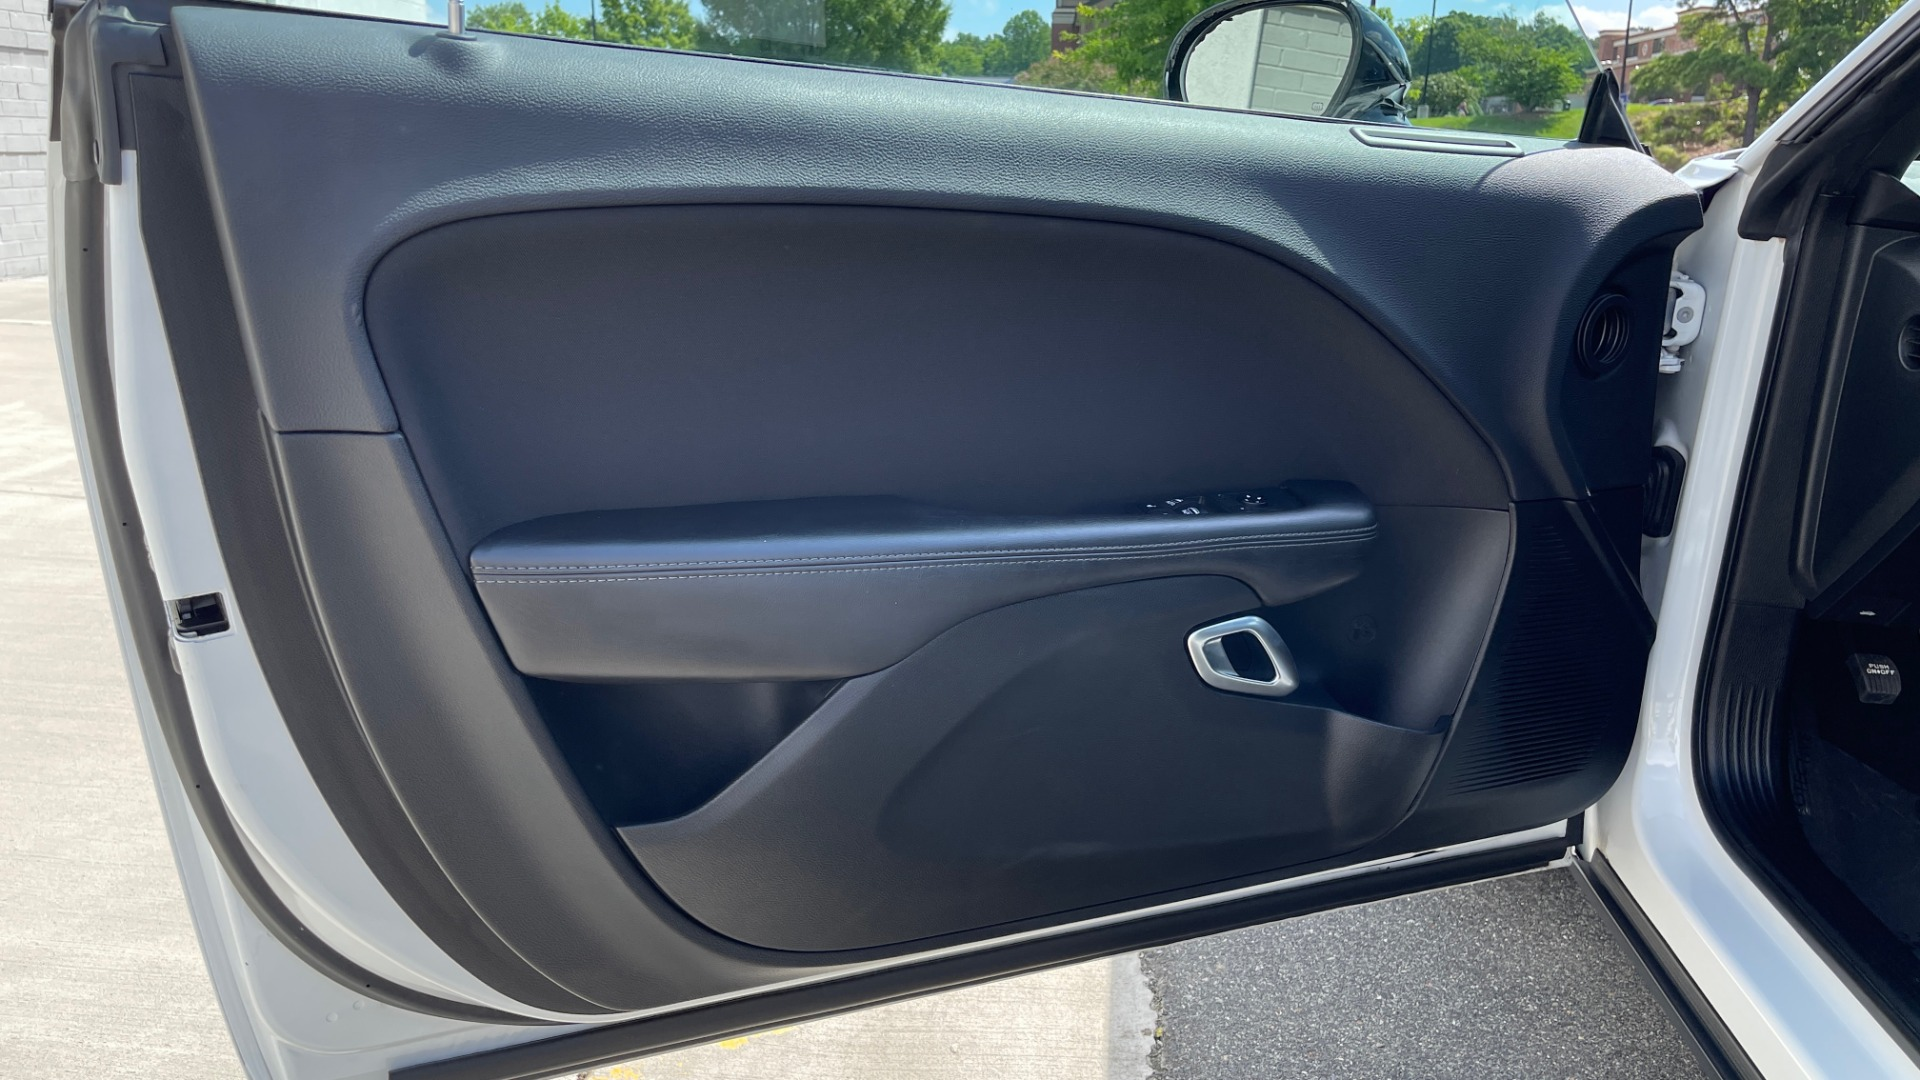 Used 2018 Dodge CHALLENGER SXT COUPE / BLACKTOP PKG / 3.6L V6 / 8-SPD AUTO / REARVIEW for sale $31,995 at Formula Imports in Charlotte NC 28227 26